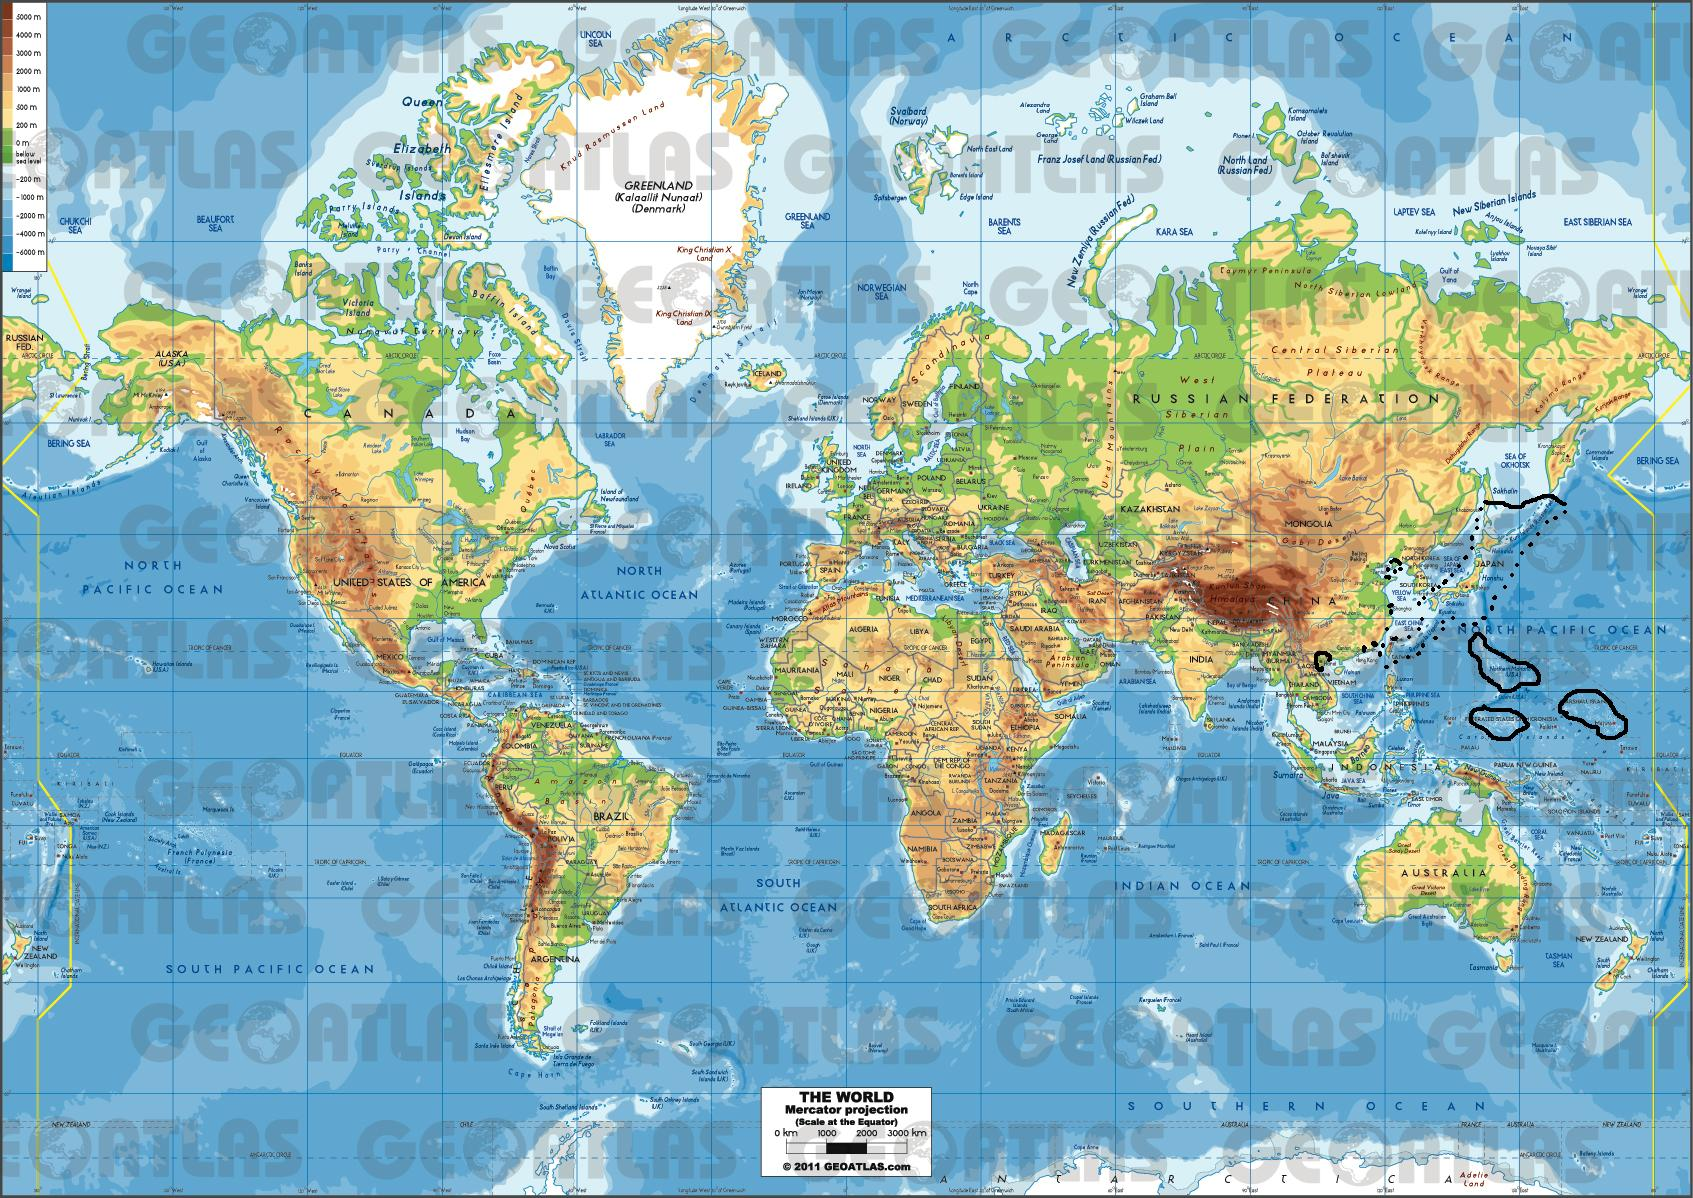 Empire Of Japan Axis Vs Allies Revolutions Map Game - Current us allies map